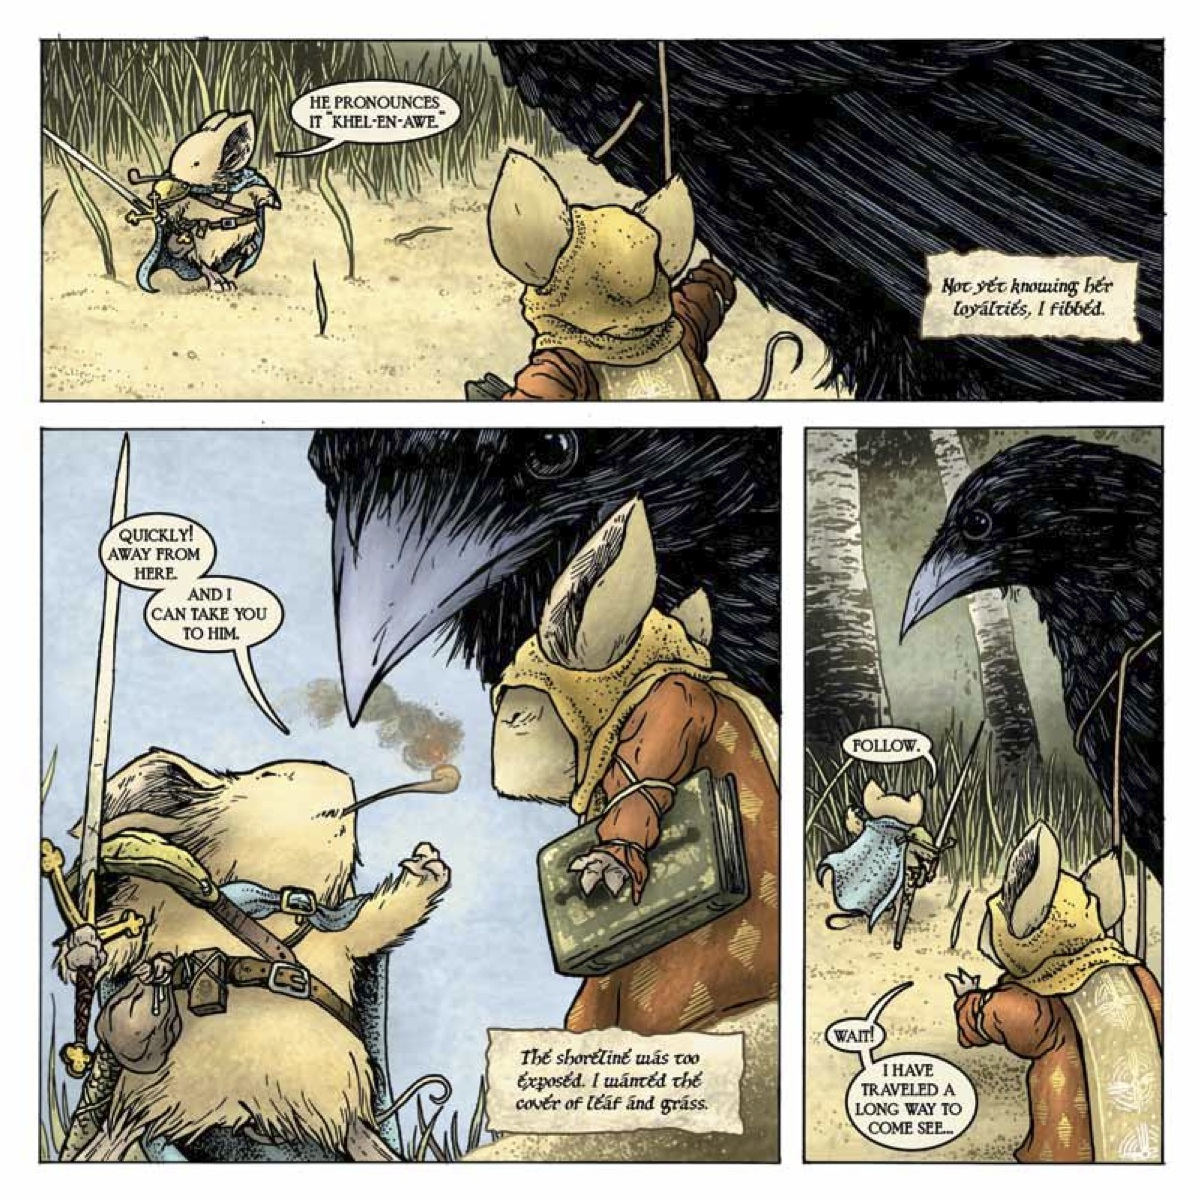 Free Comic Book Day 2013: Mouse Guard Vol. 3: The Black Axe' July 10th! Check Out